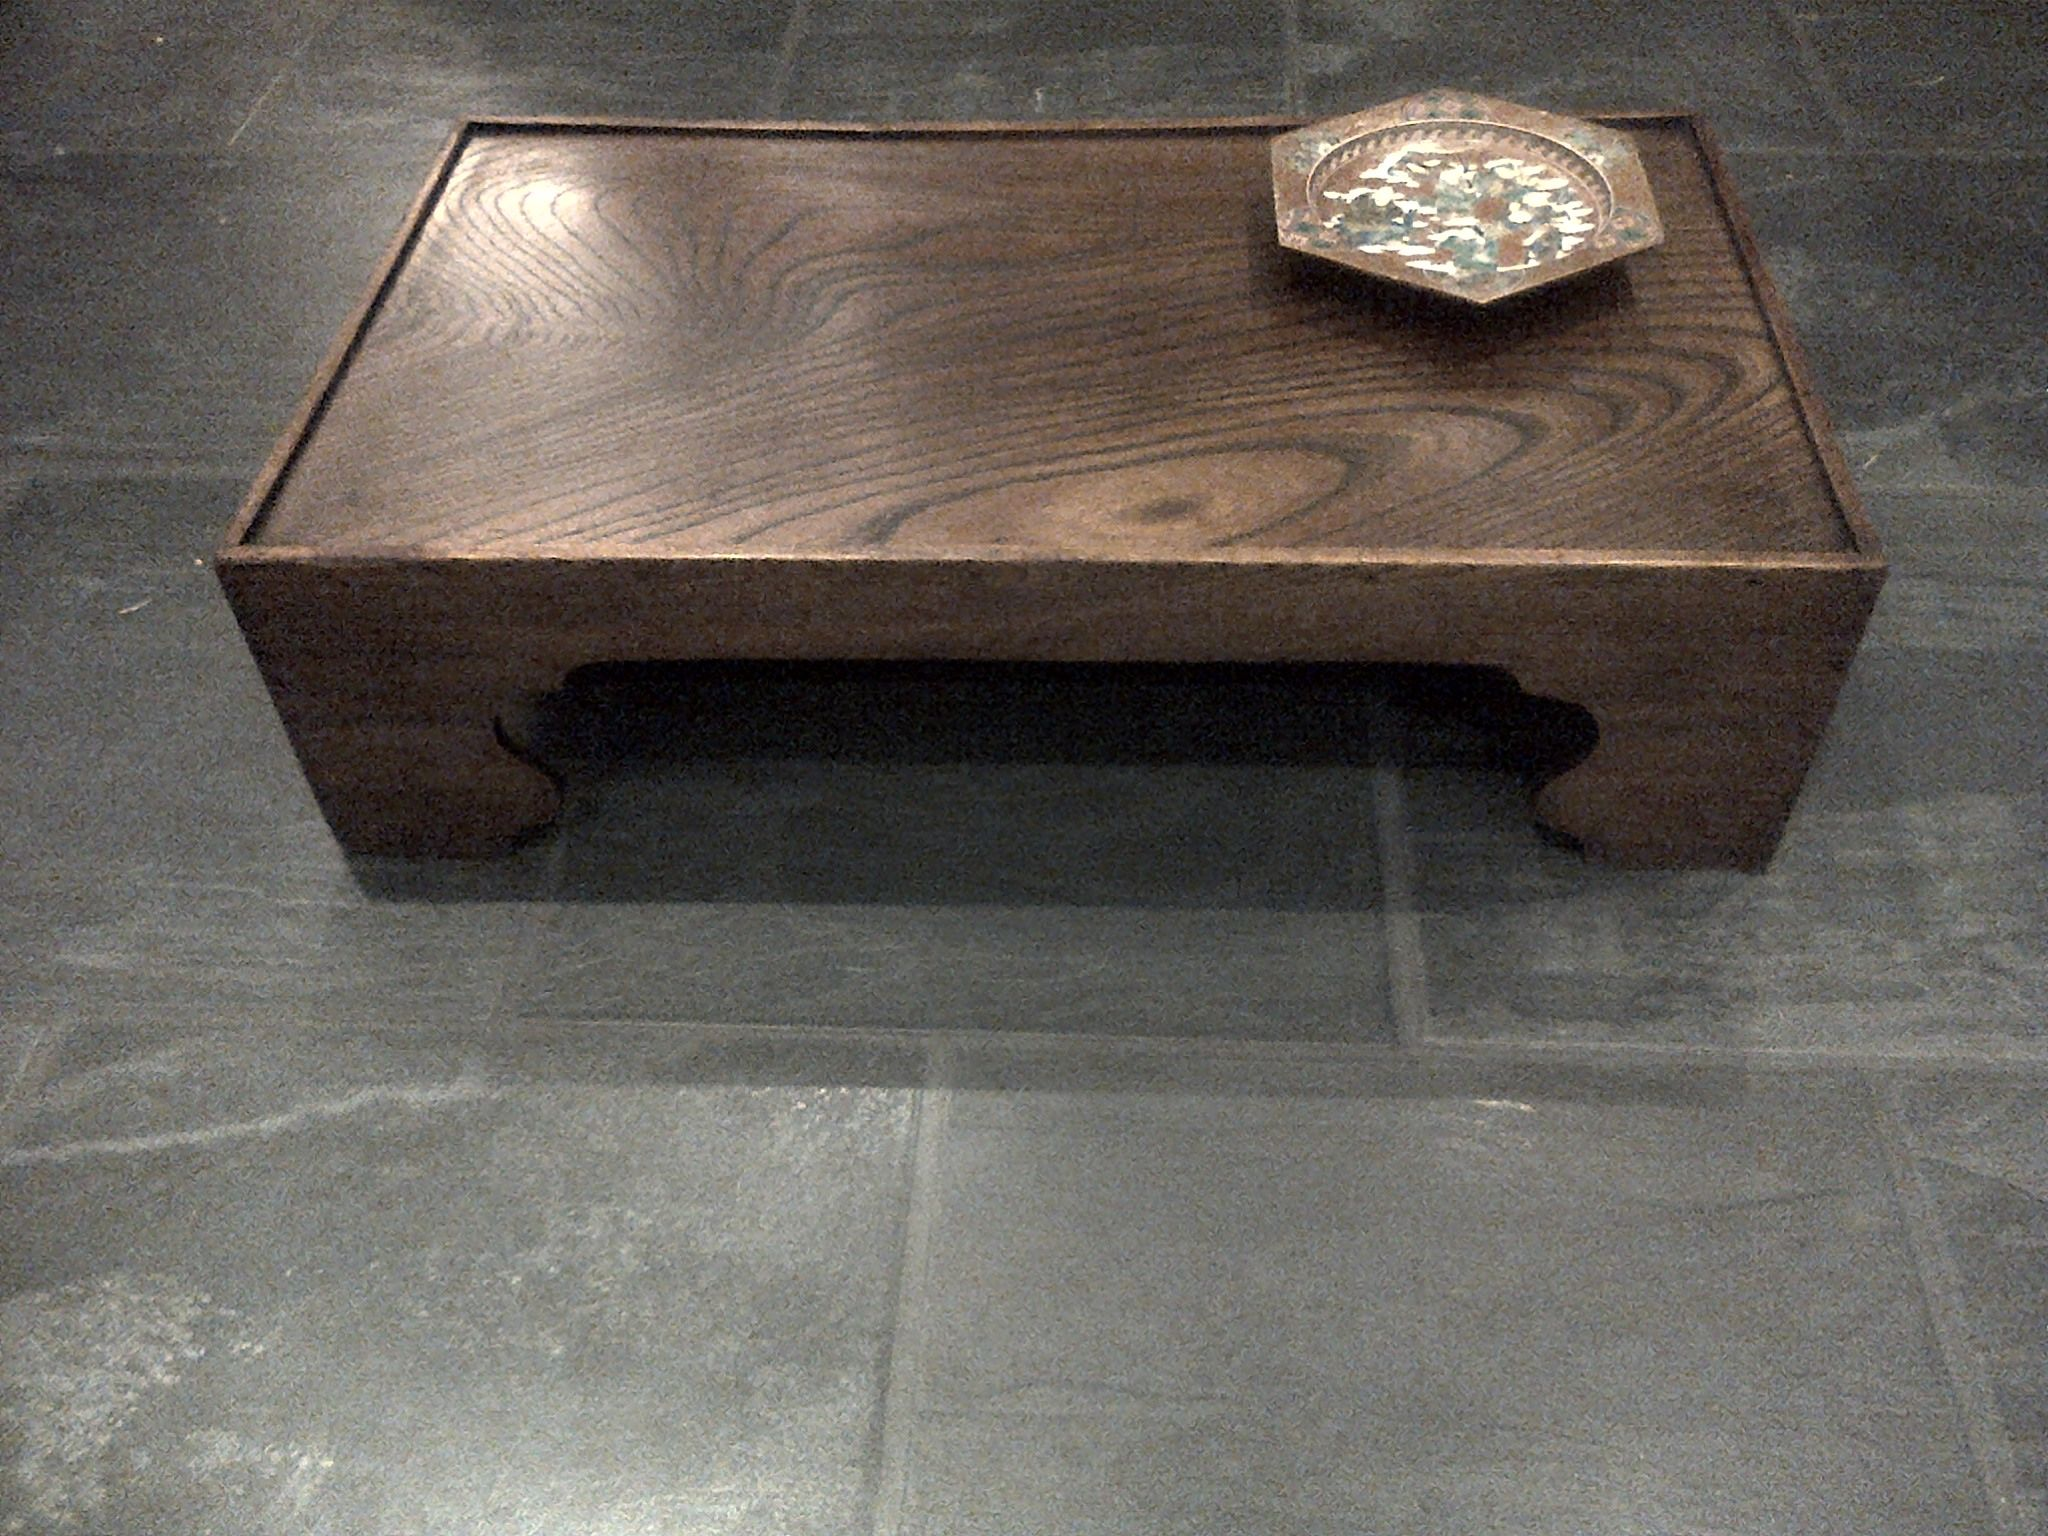 Antique Japanese tea table - called a Zataku and made from ...